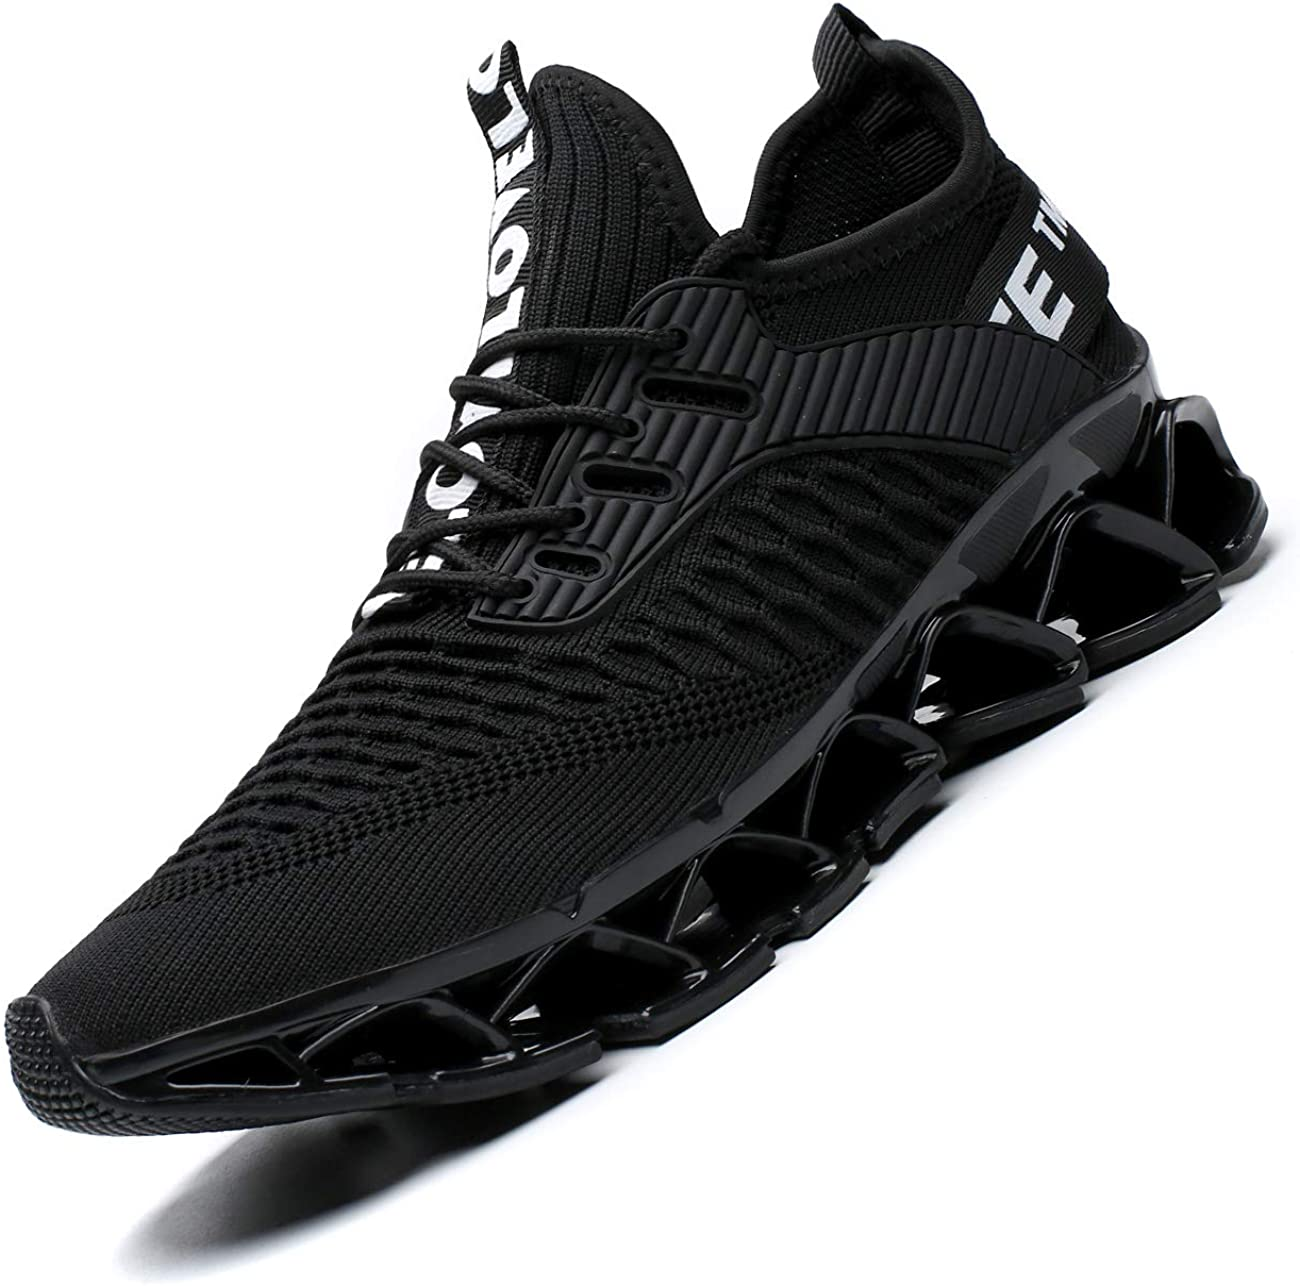 Chopben Mens Running Shoes Blade Non Slip Fashion Sneakers Breathable Mesh Soft Sole Casual Athletic Lightweight Walking Shoes